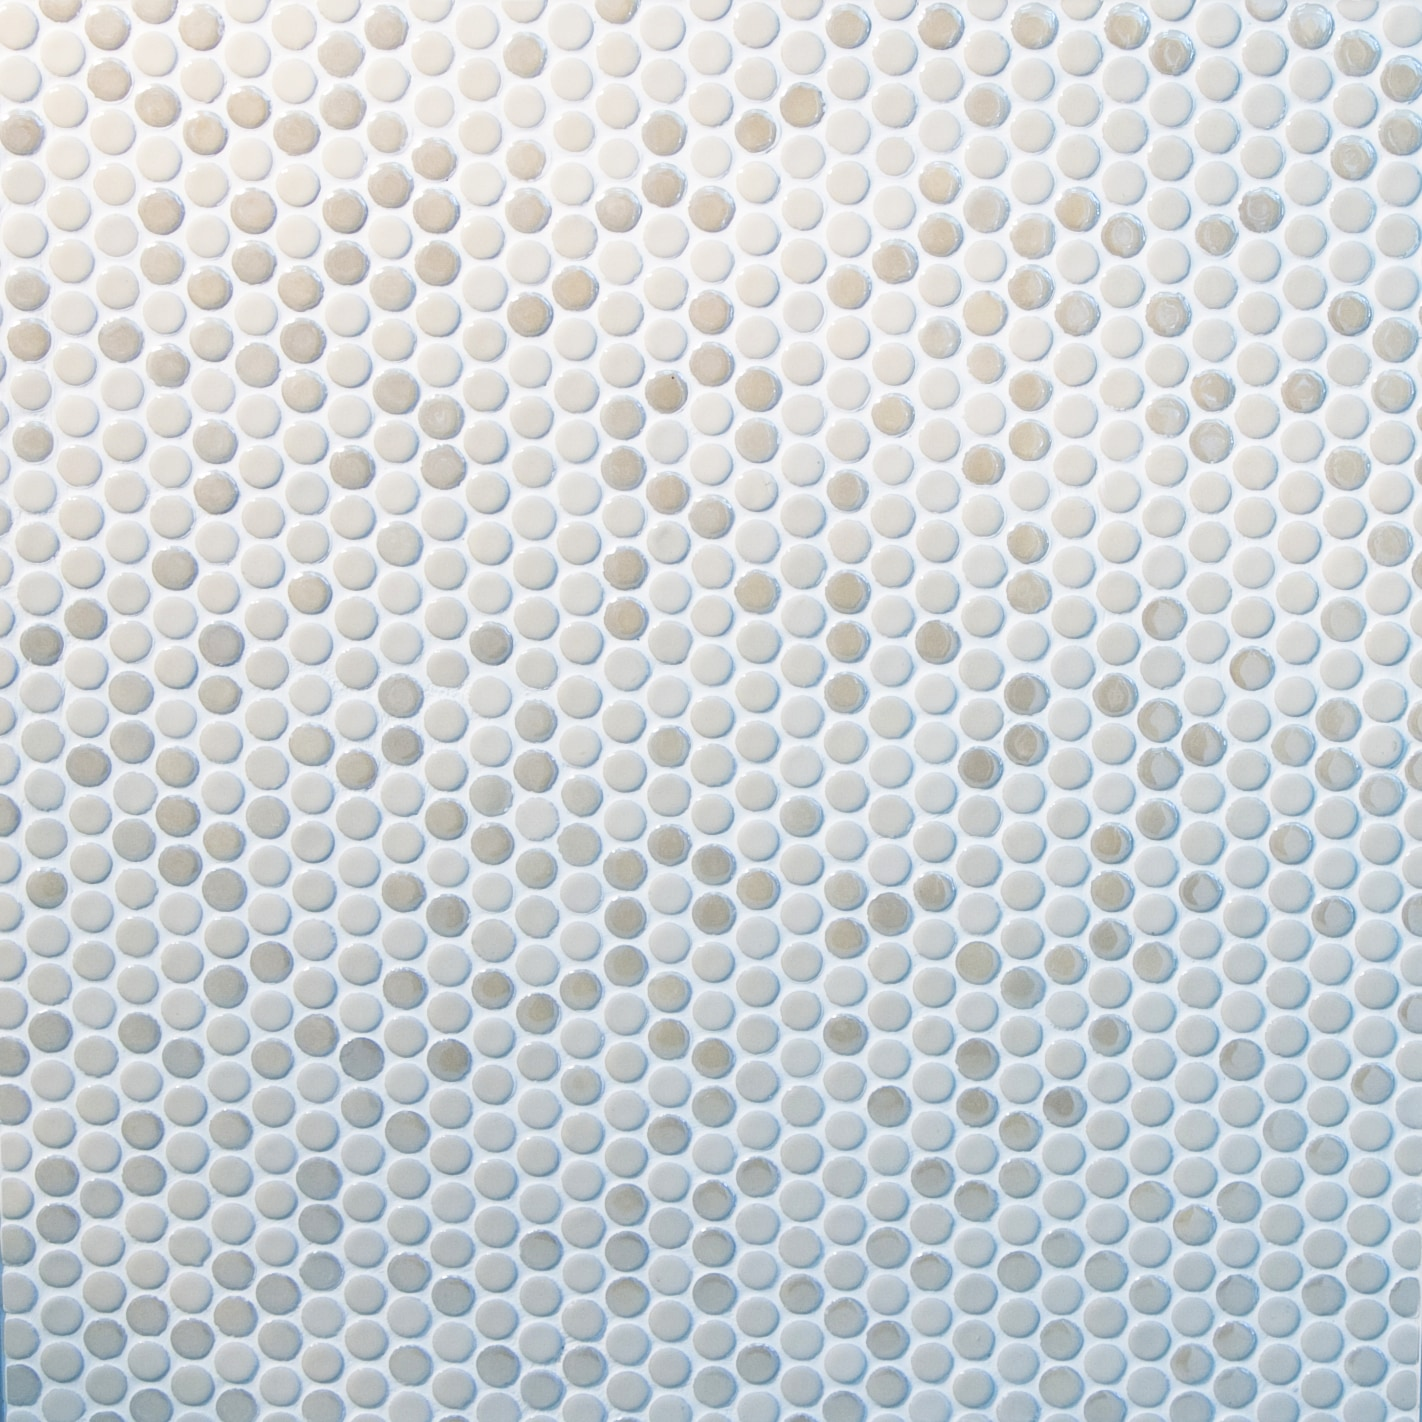 Light and dark beige, small circles / Glossy and Matte Porcelain Circle Mosaics 0